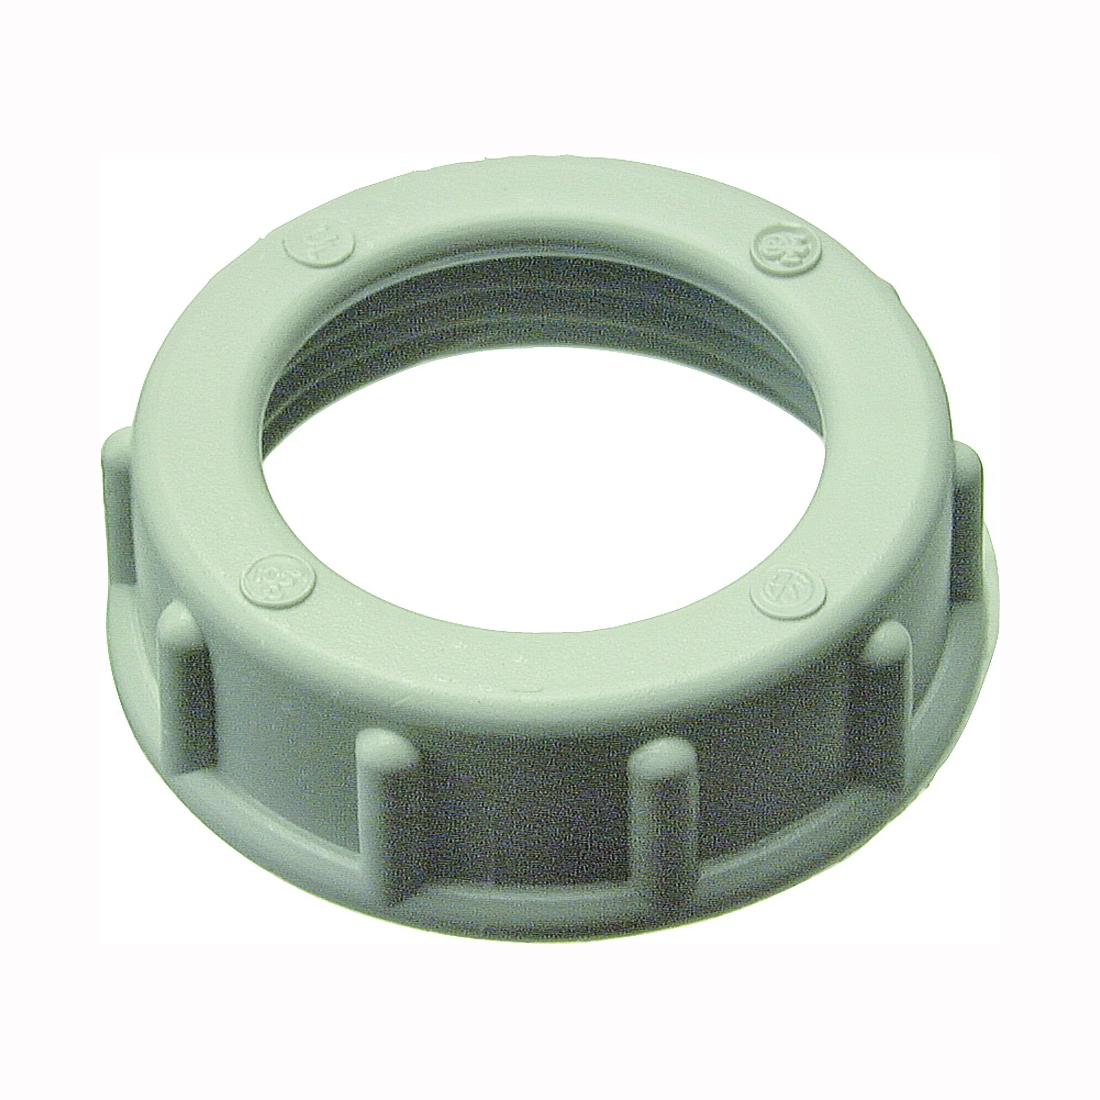 Picture of Halex 75212B Conduit Bushing, 1-1/4 in Trade, Thermoplastic